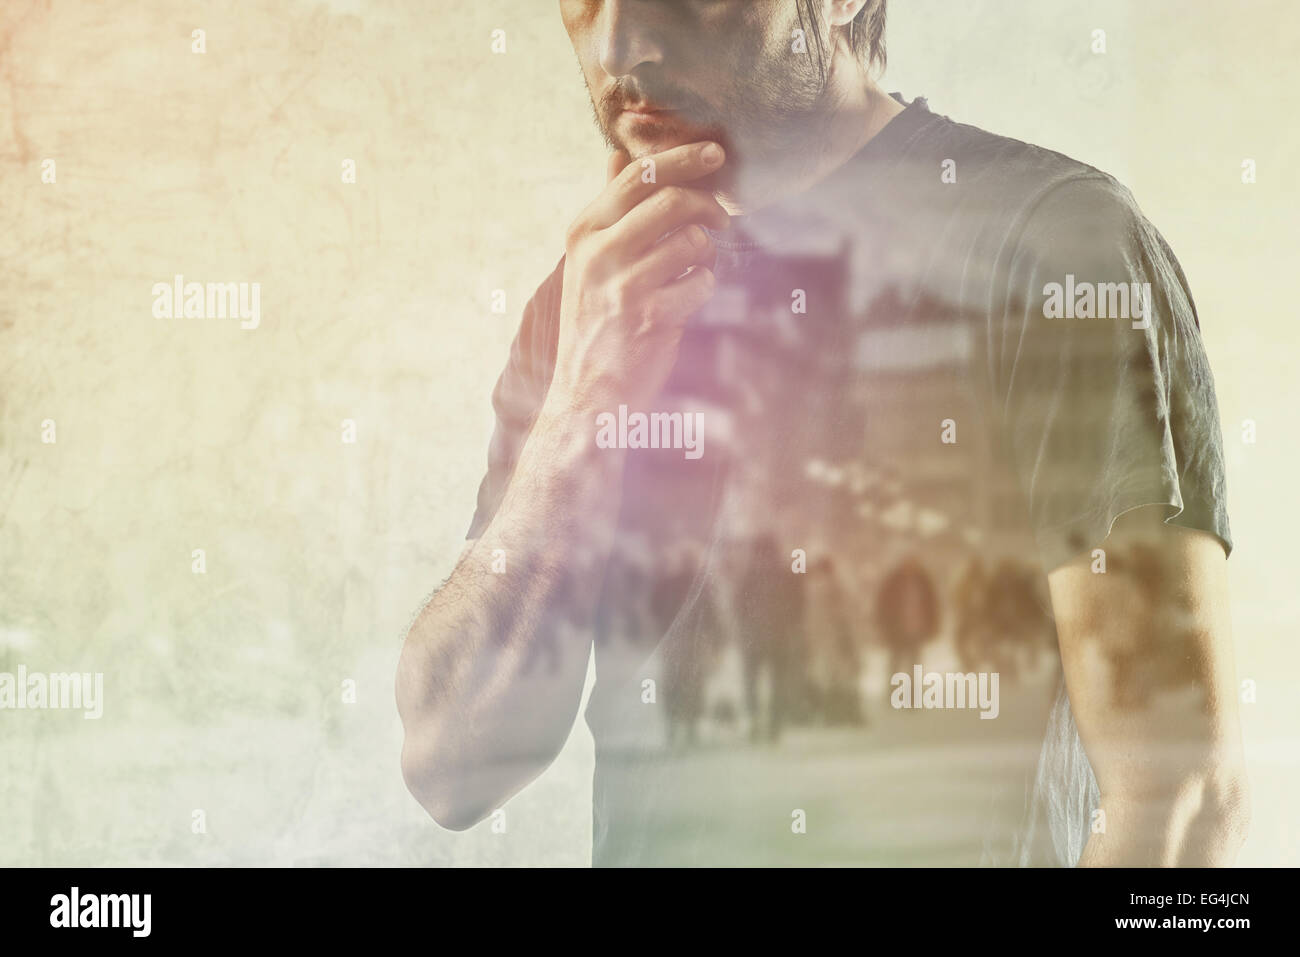 Conceptual Composite Image of Adult Lonely Man Remembering Something from his Past, Hand on Chin. - Stock Image